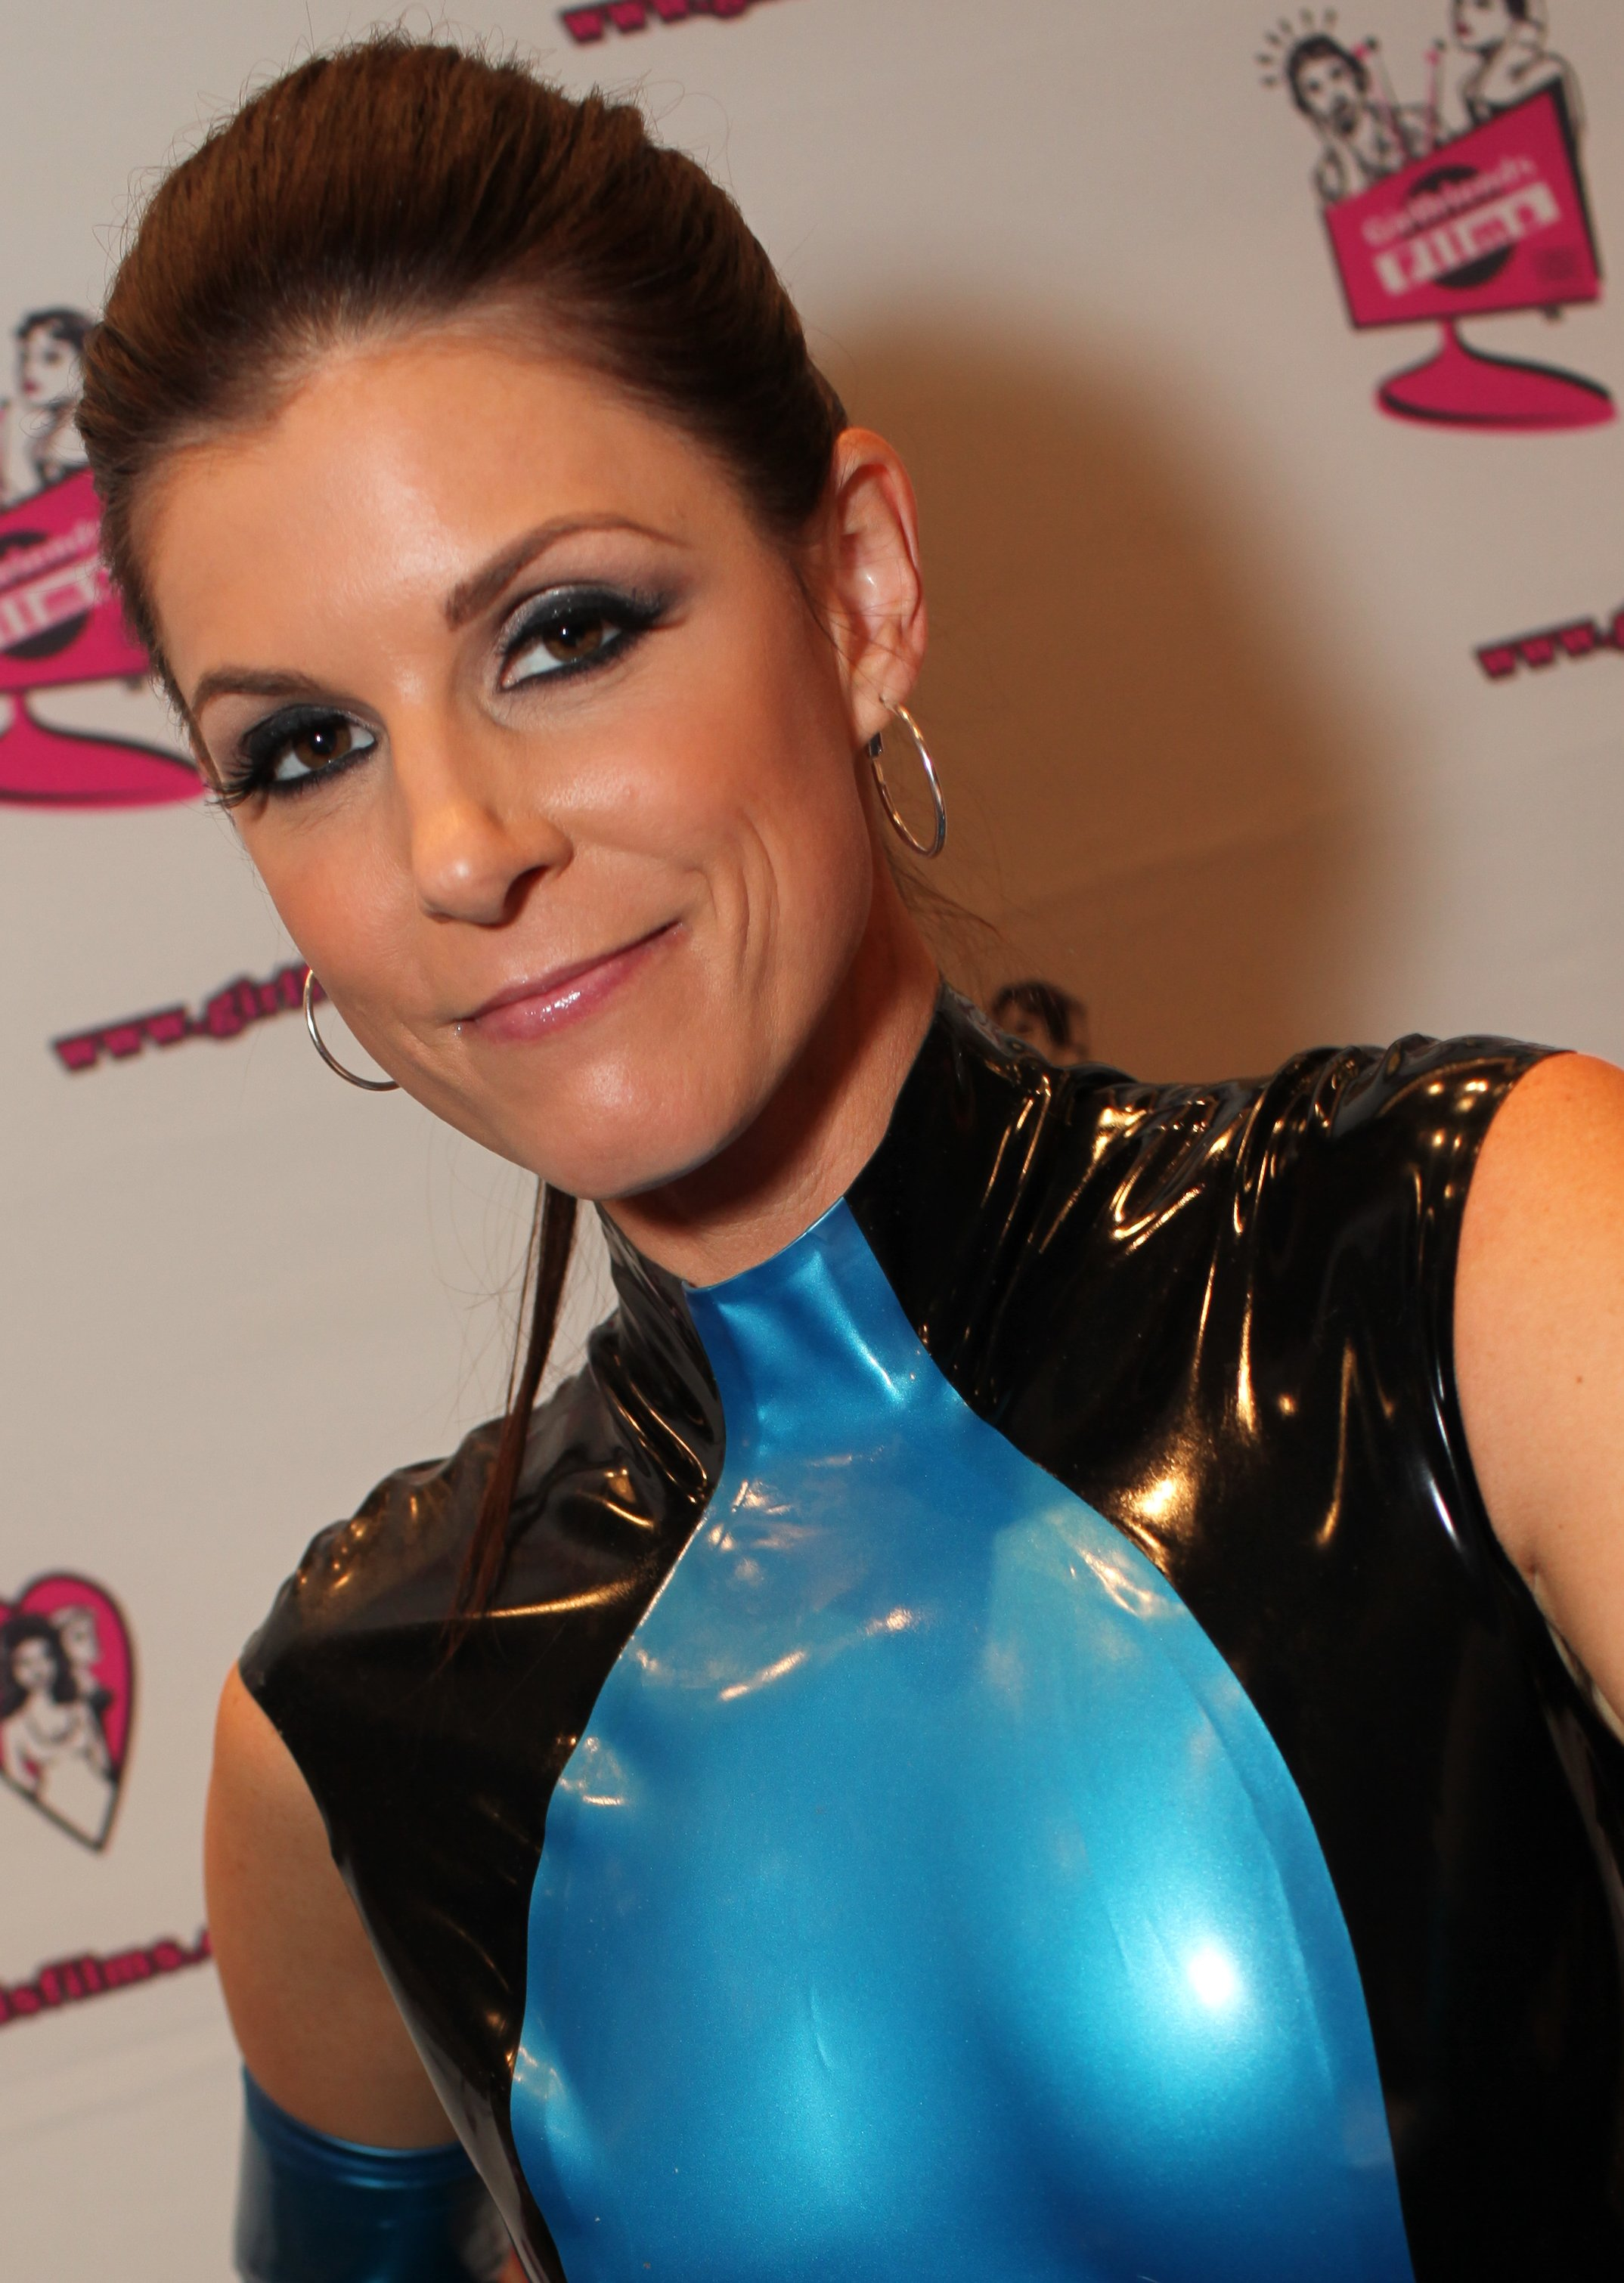 File:India Summer AEE 2013.jpg - Wikimedia Commons